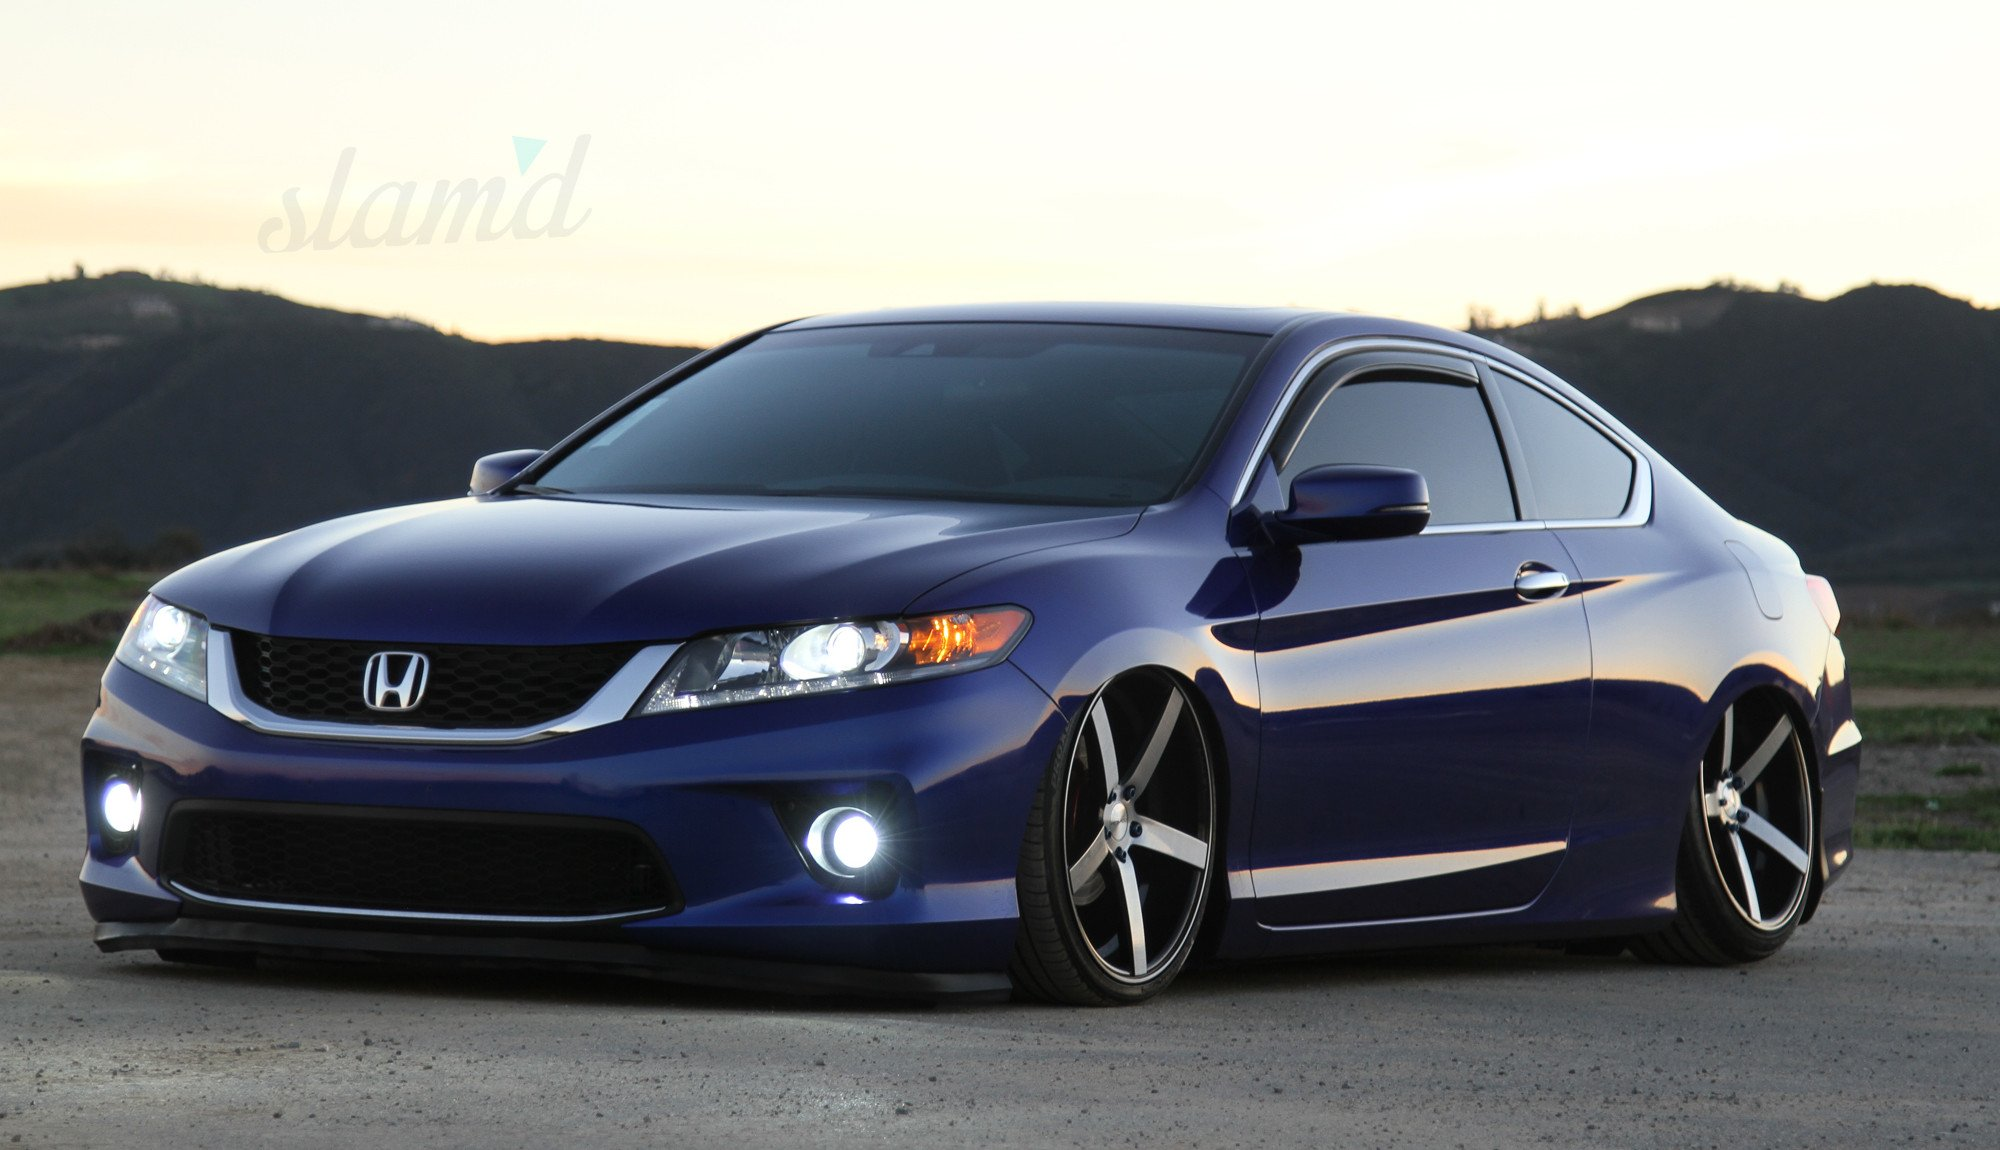 2013 Honda Accord Ex L Tuning Custom Lowrider Wallpaper